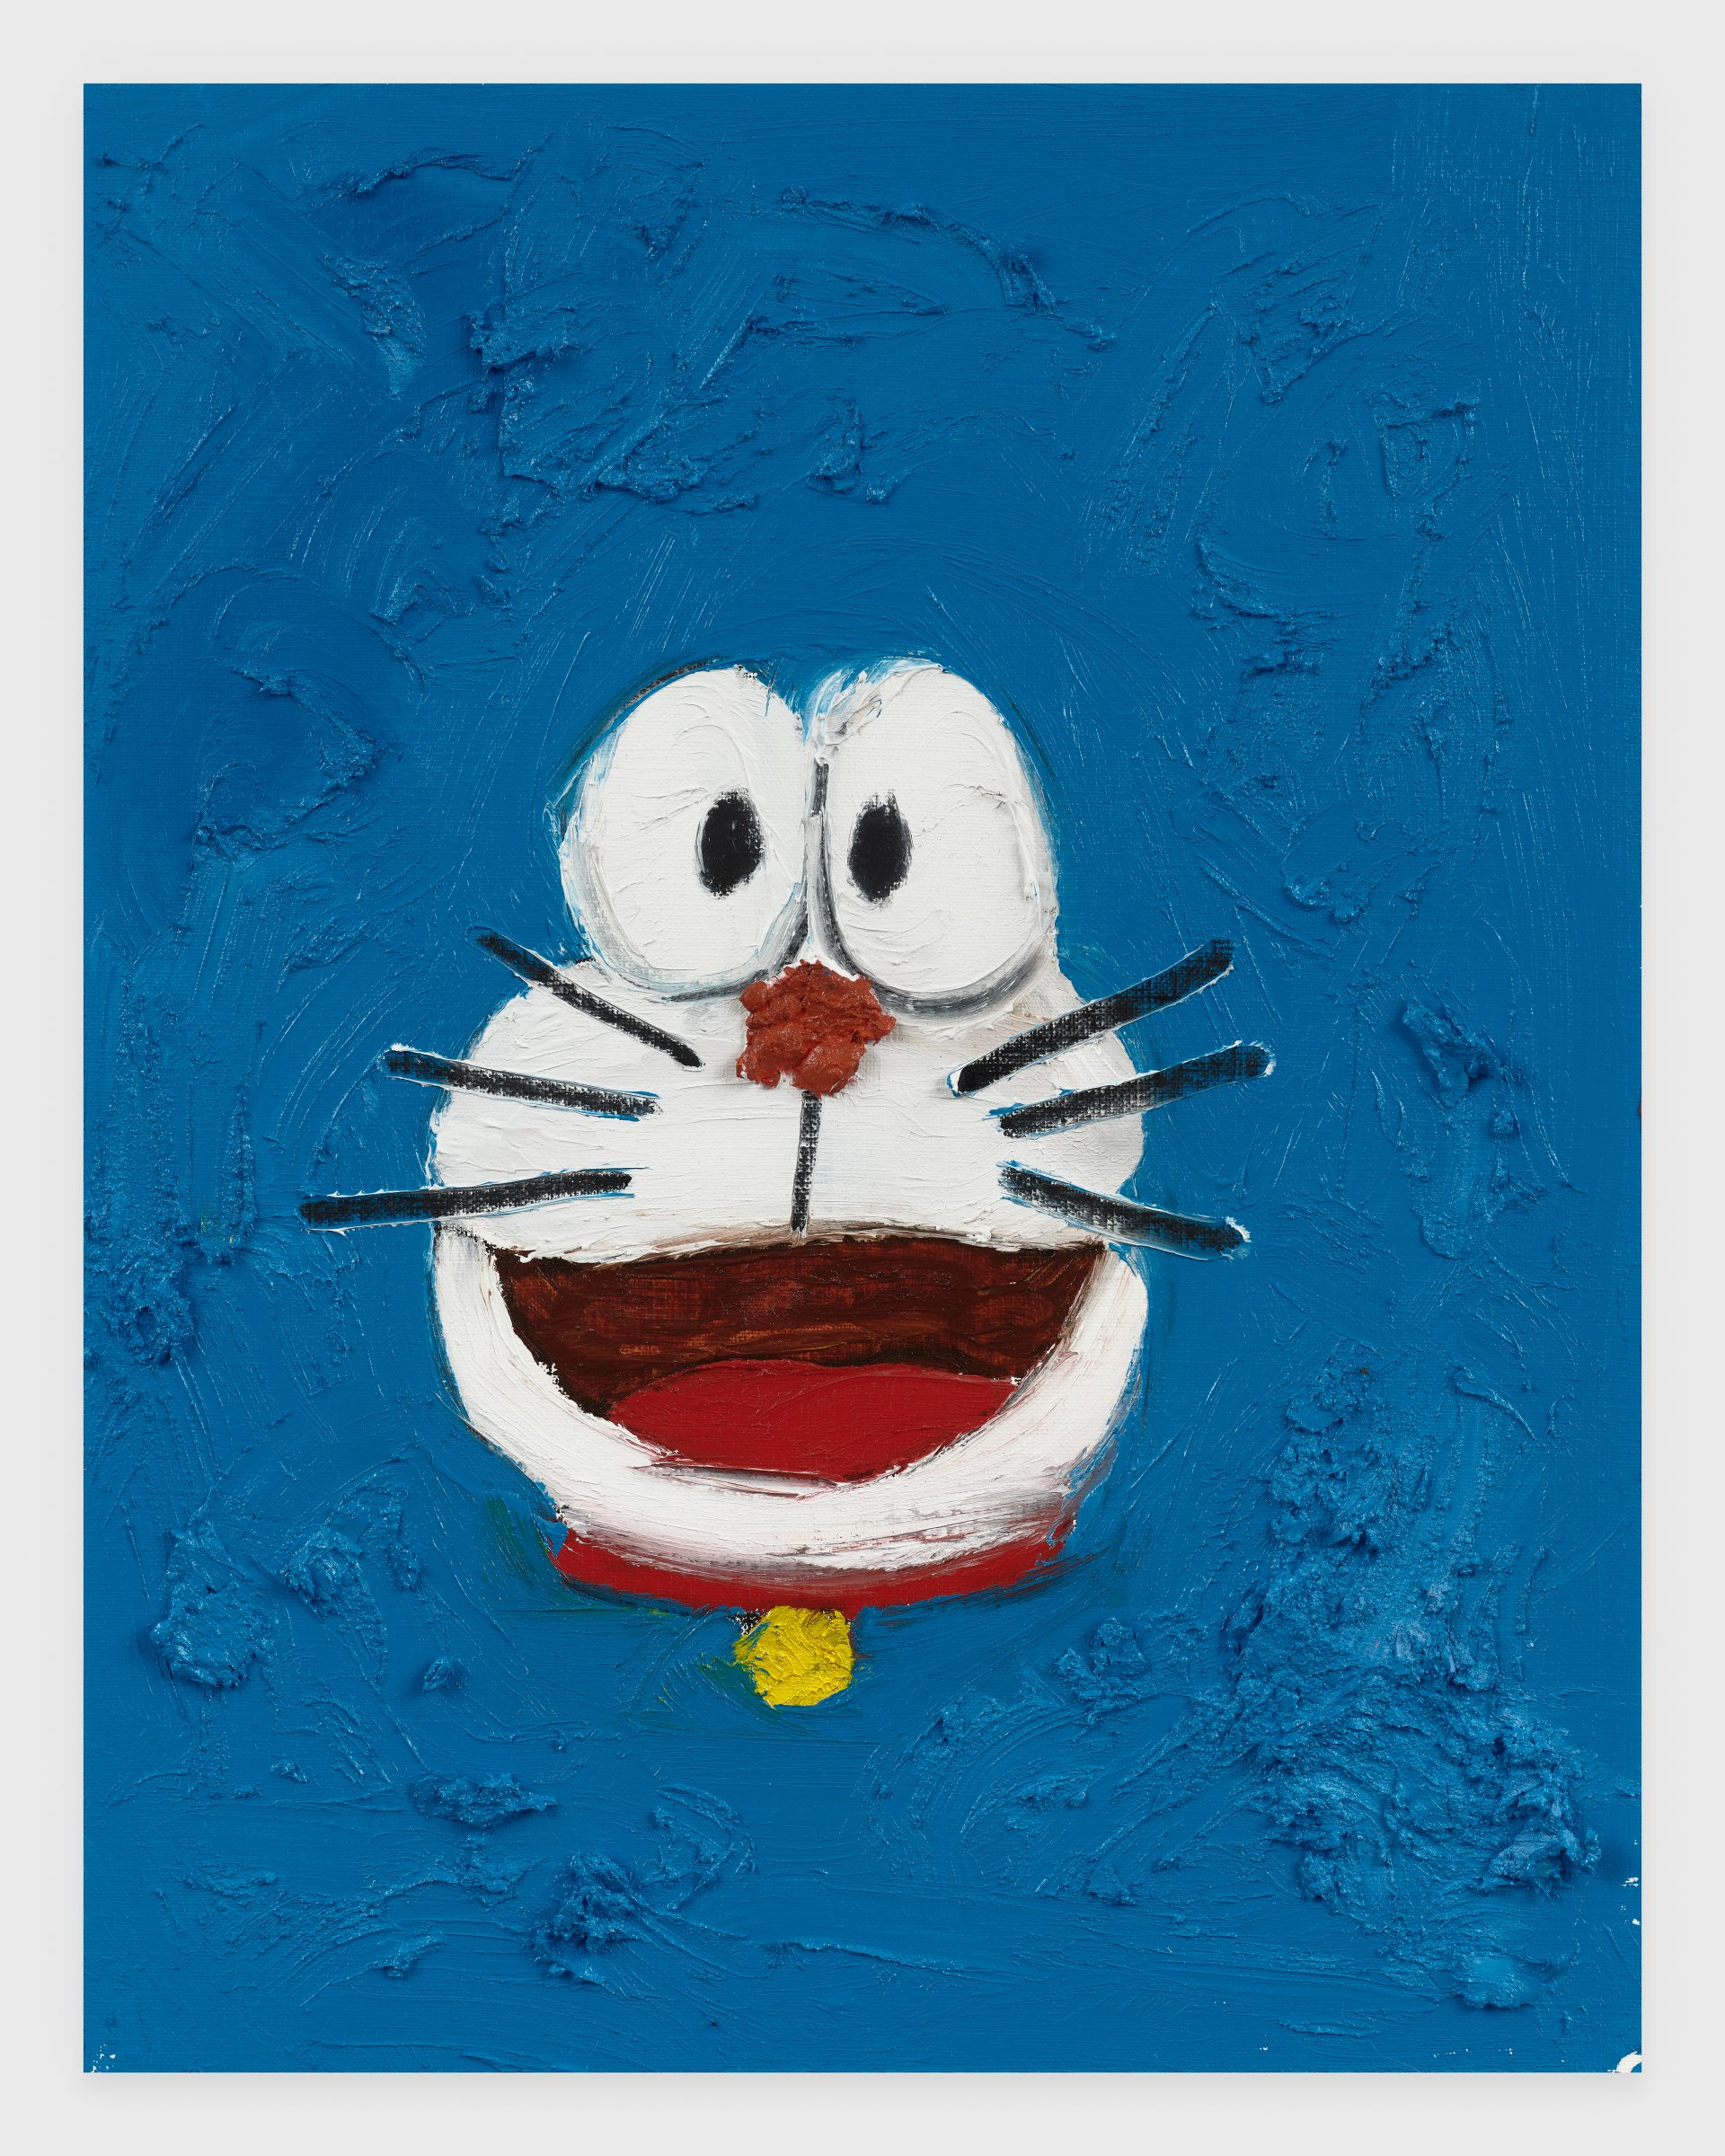 Doraemon, 2020, Oil stick on archival paper, 11 x 14 inches